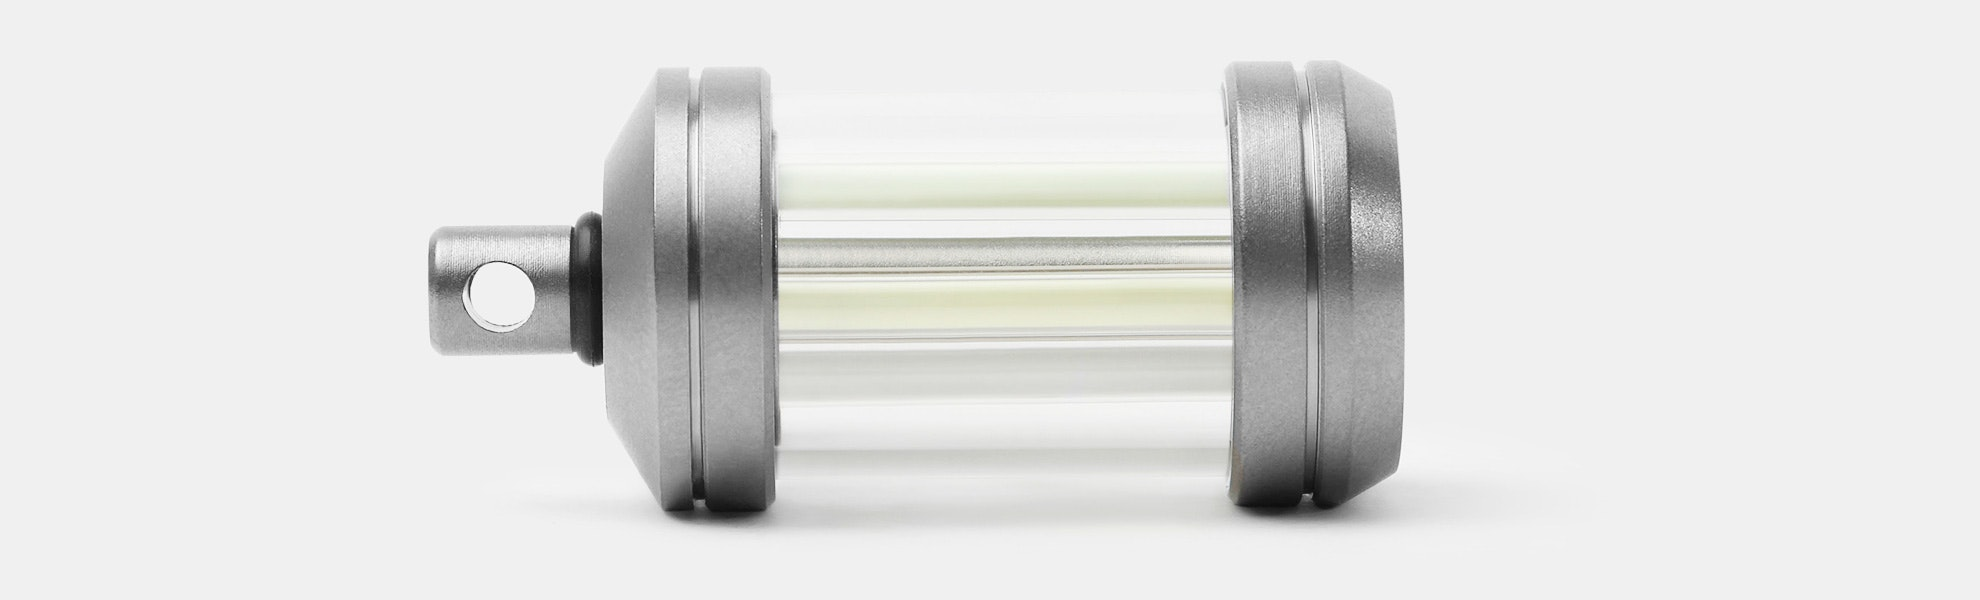 TEC Accessories Isotope Reactor Fob